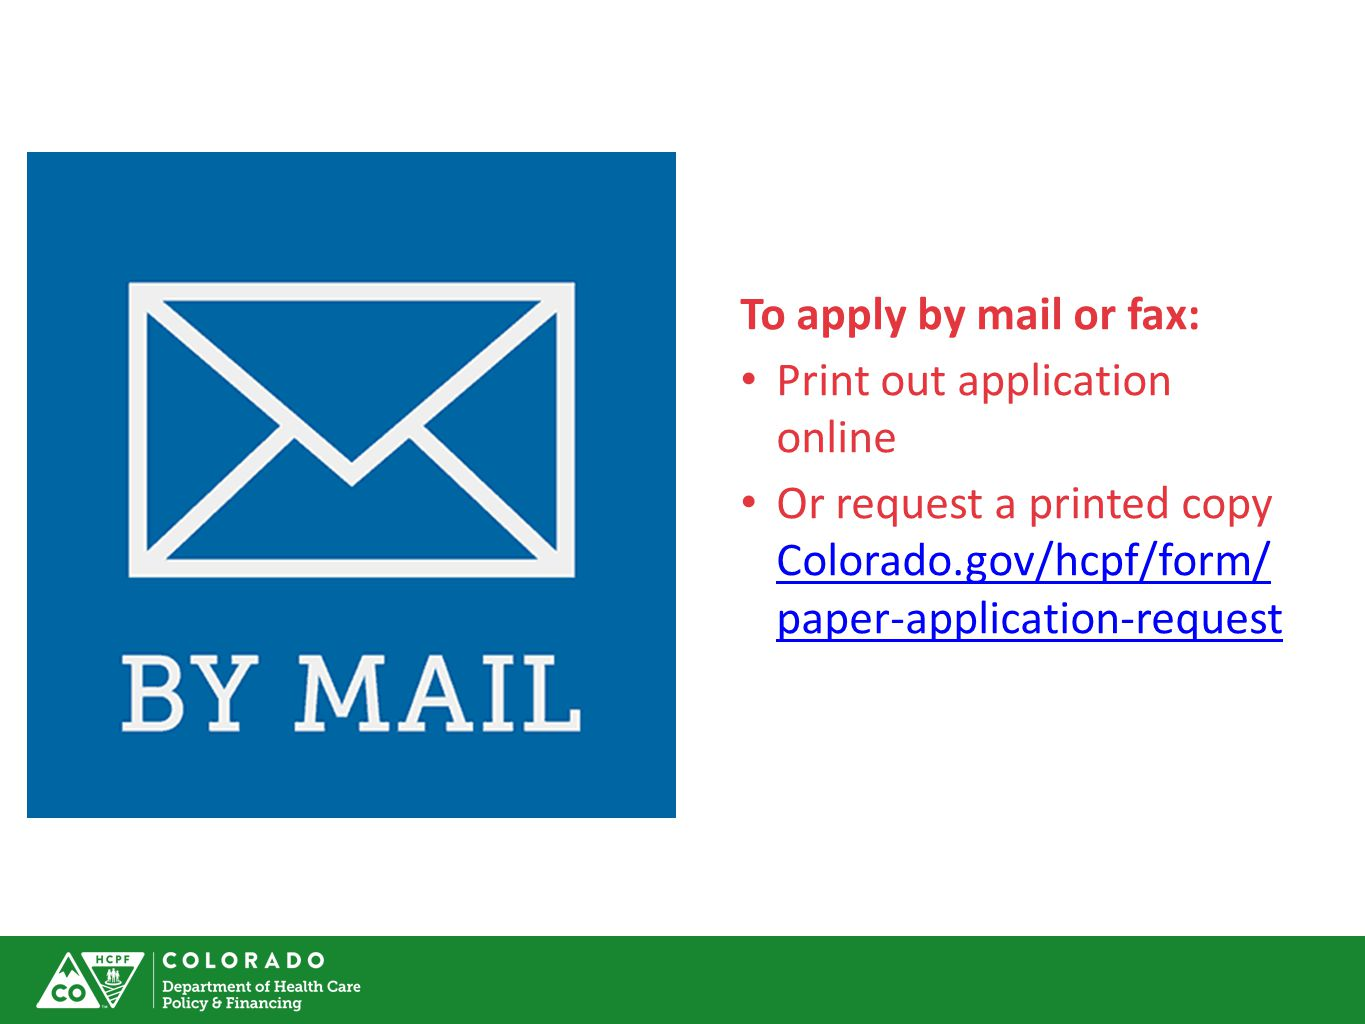 To apply by mail or fax: Print out application online Or request a printed copy Colorado.gov/hcpf/form/ paper-application-request Colorado.gov/hcpf/form/ paper-application-request